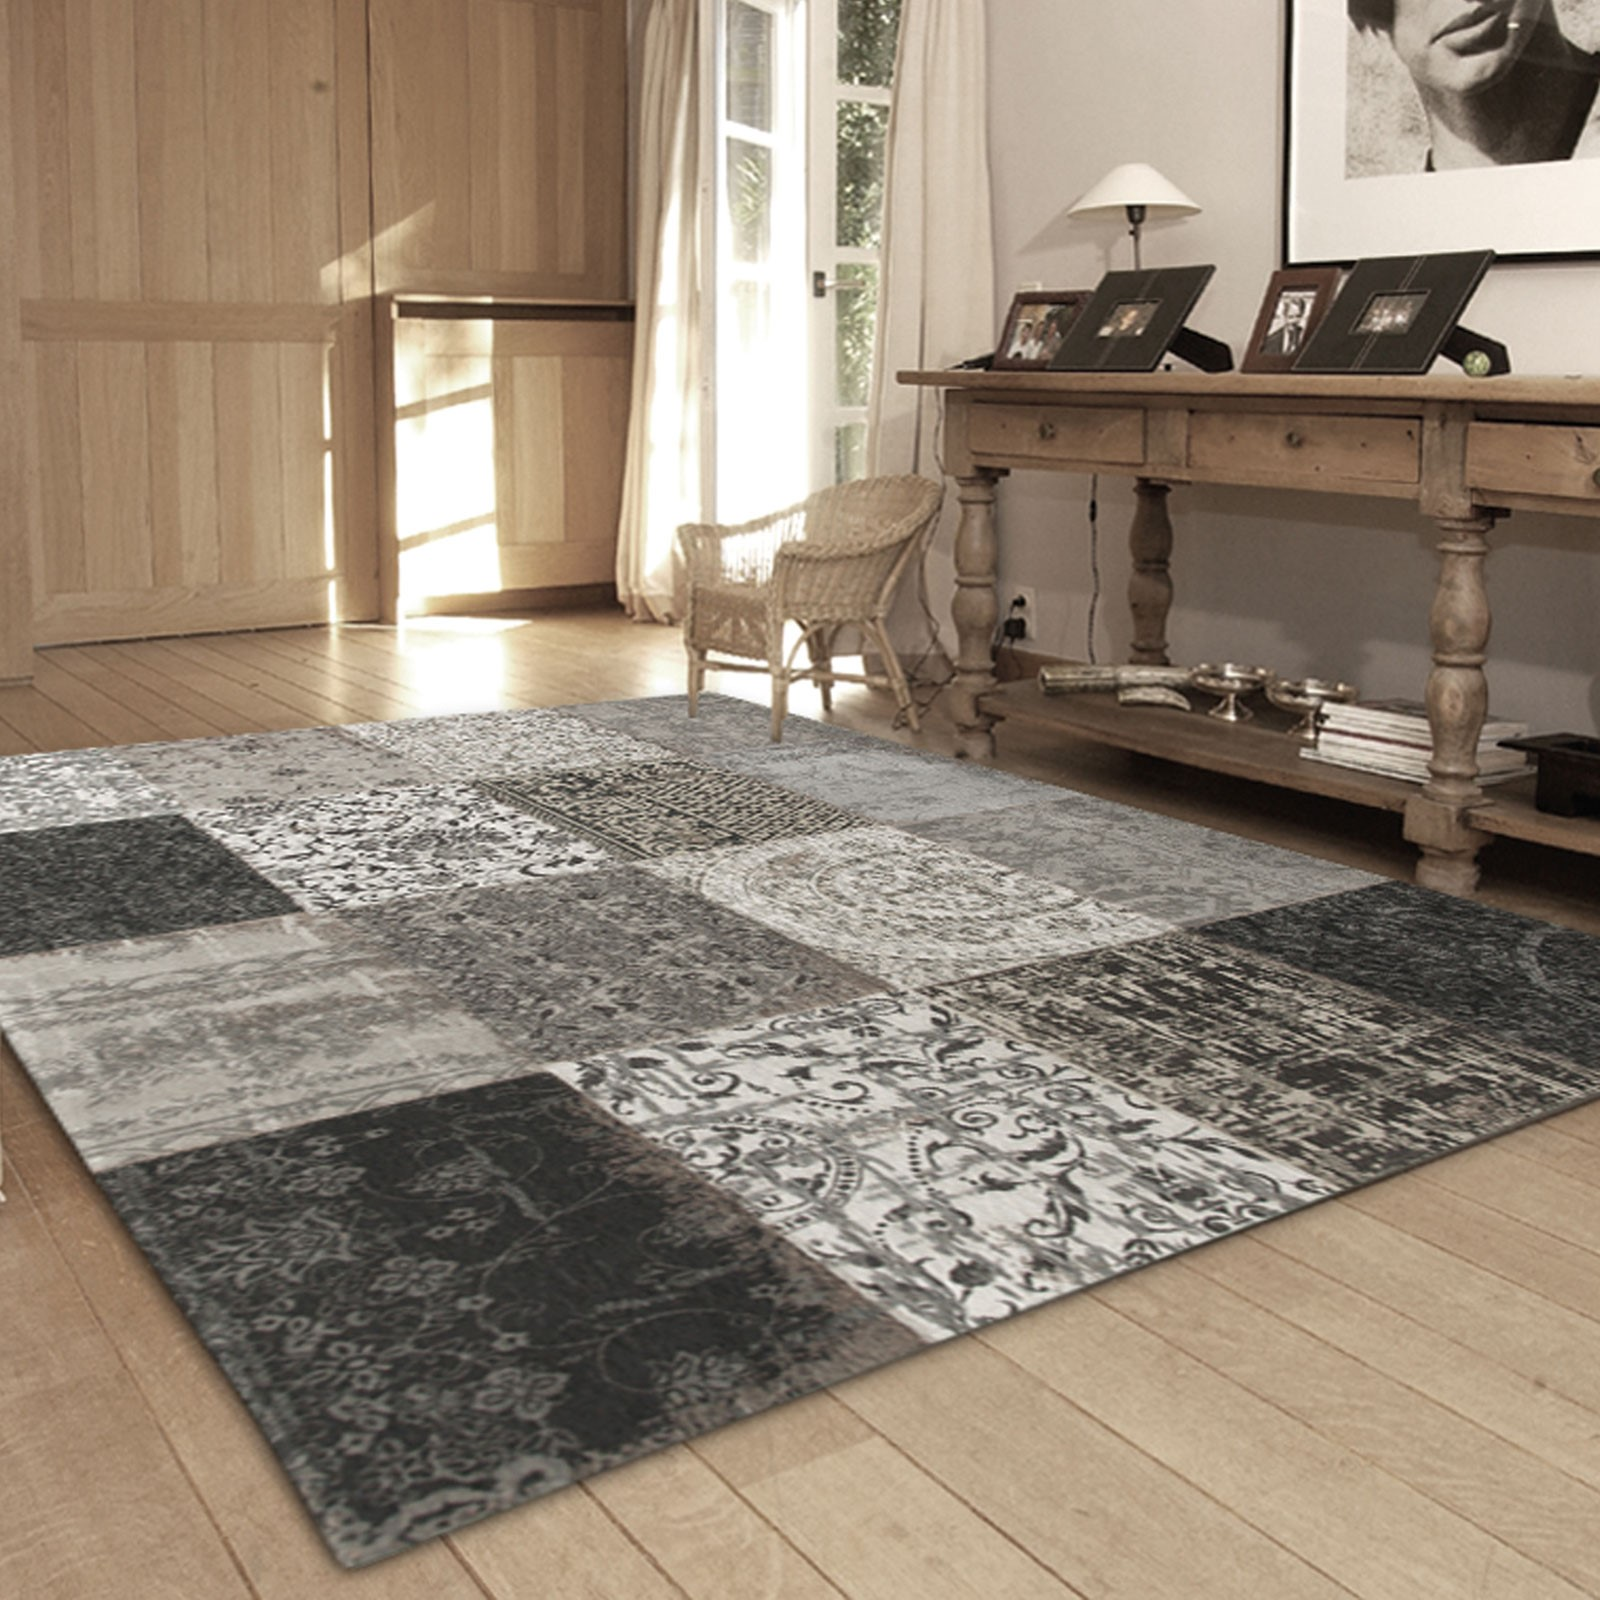 Louis de Poortere black and white rug